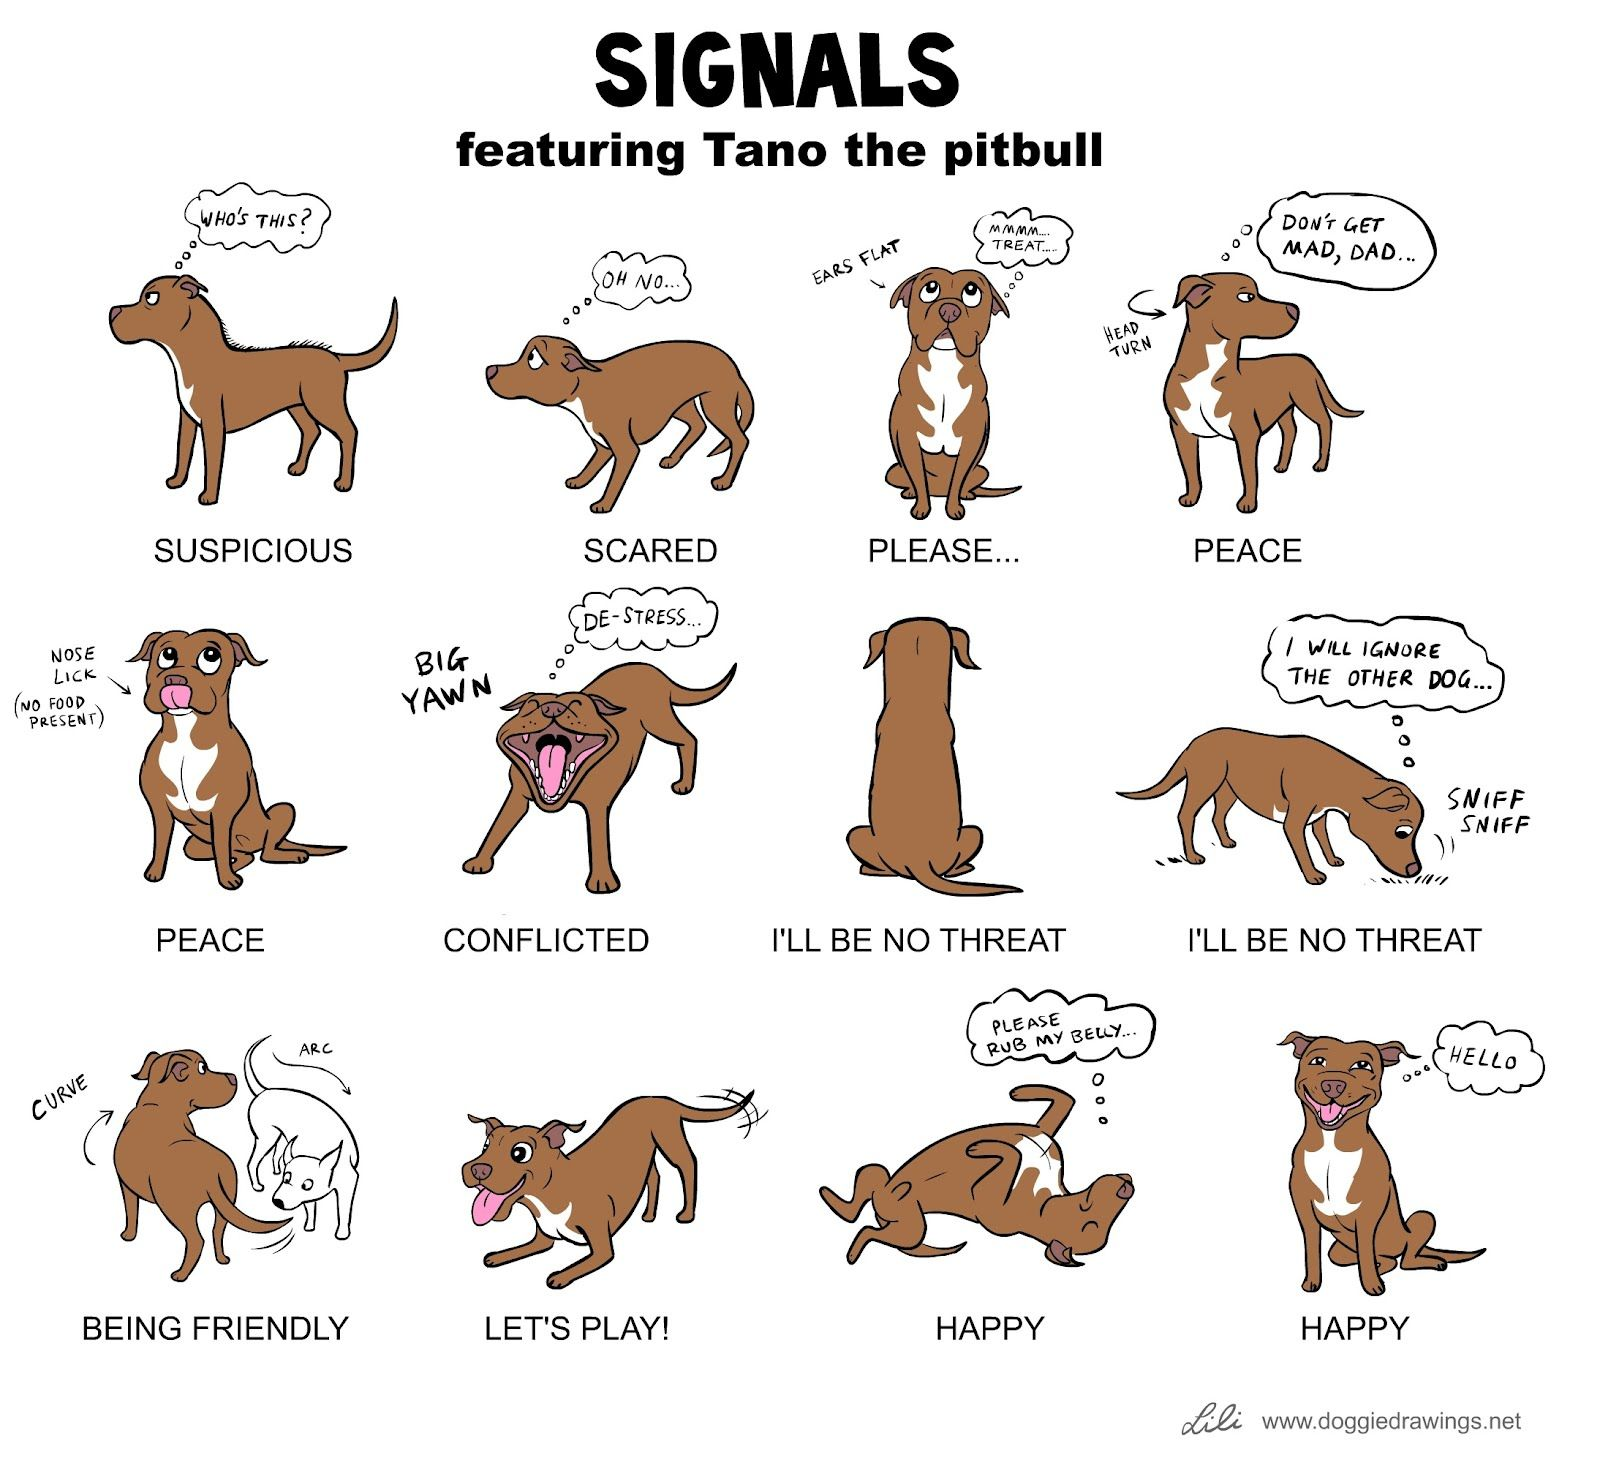 Doggie Signals featuring Tano the pitbull For the dog